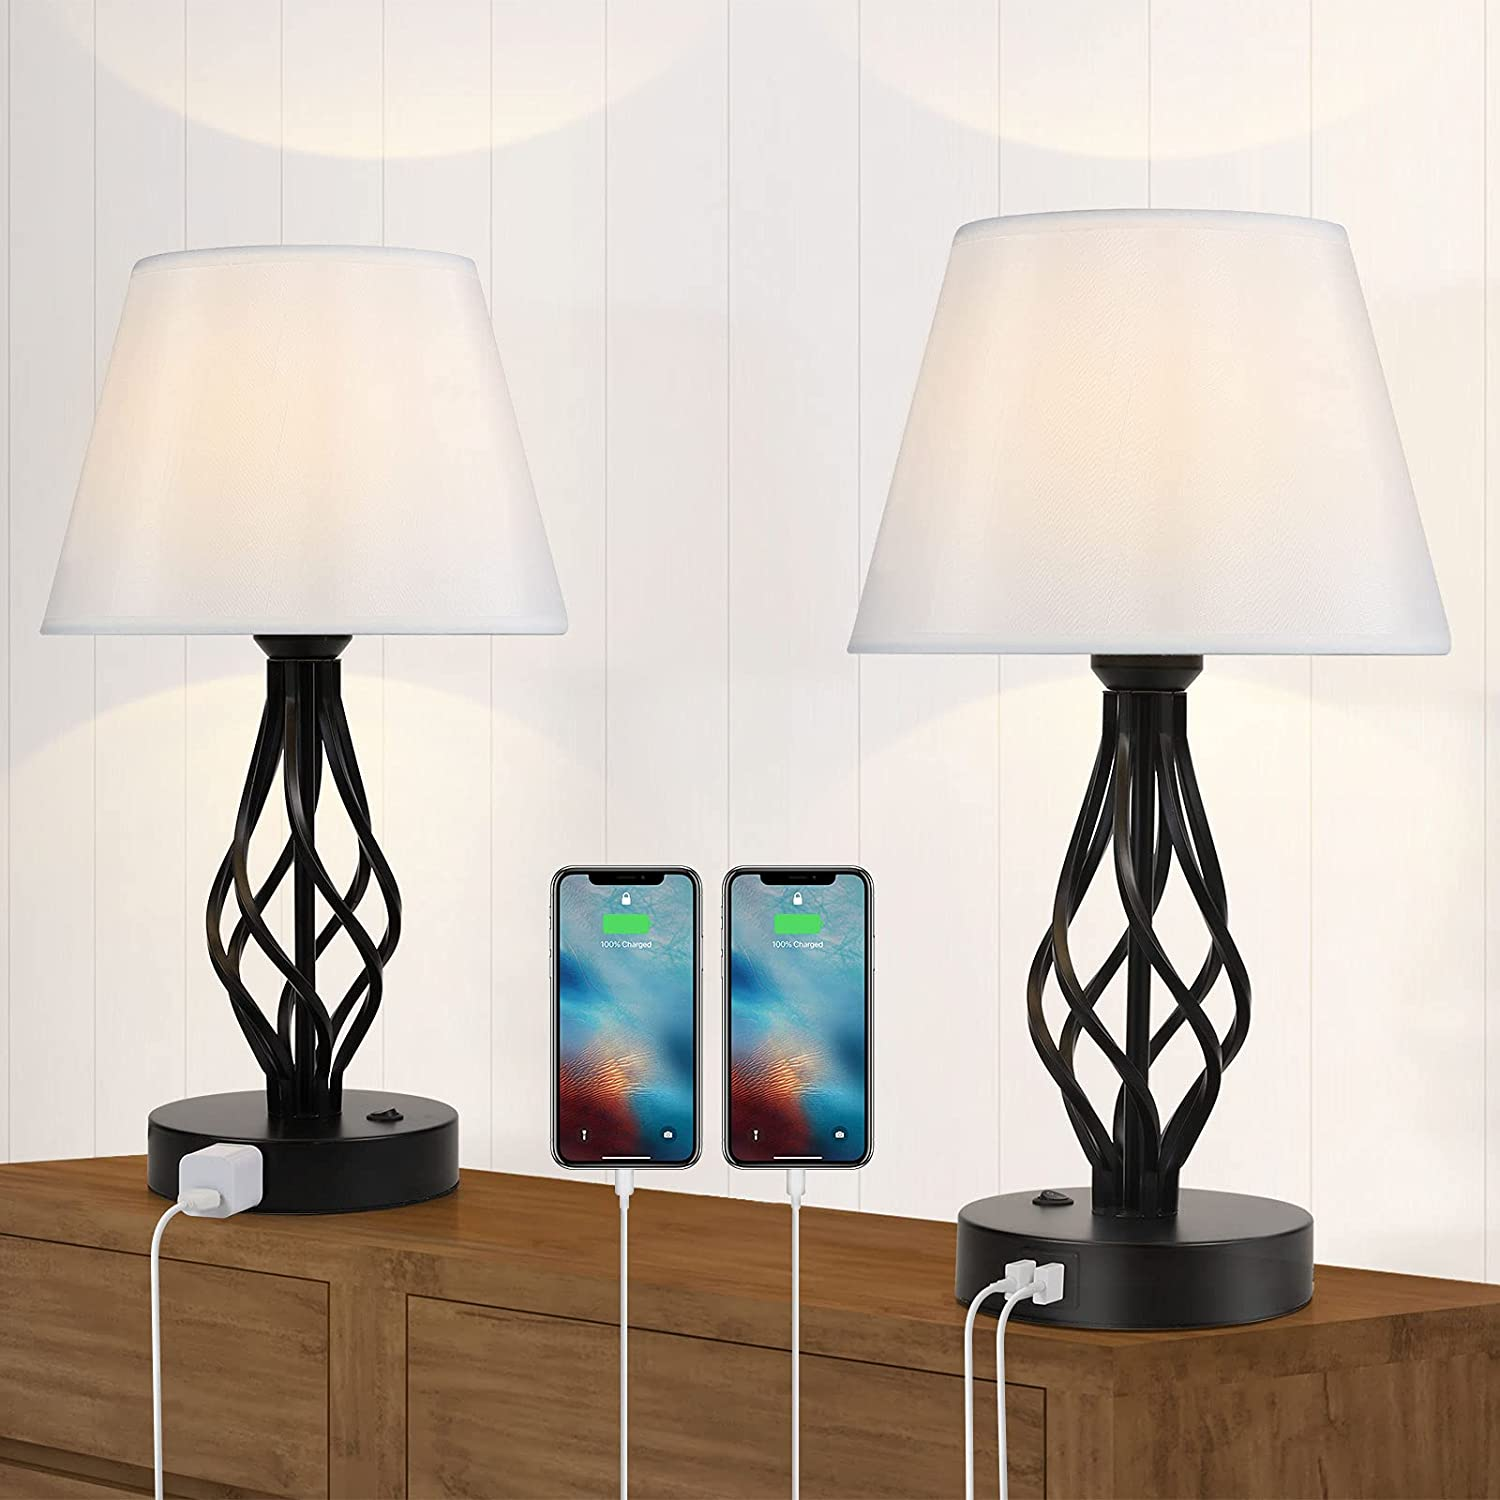 Cheap mail order shopping Set of 2 Table Lamp Modern AC USB Dallas Mall Nighstand with Dual Ports